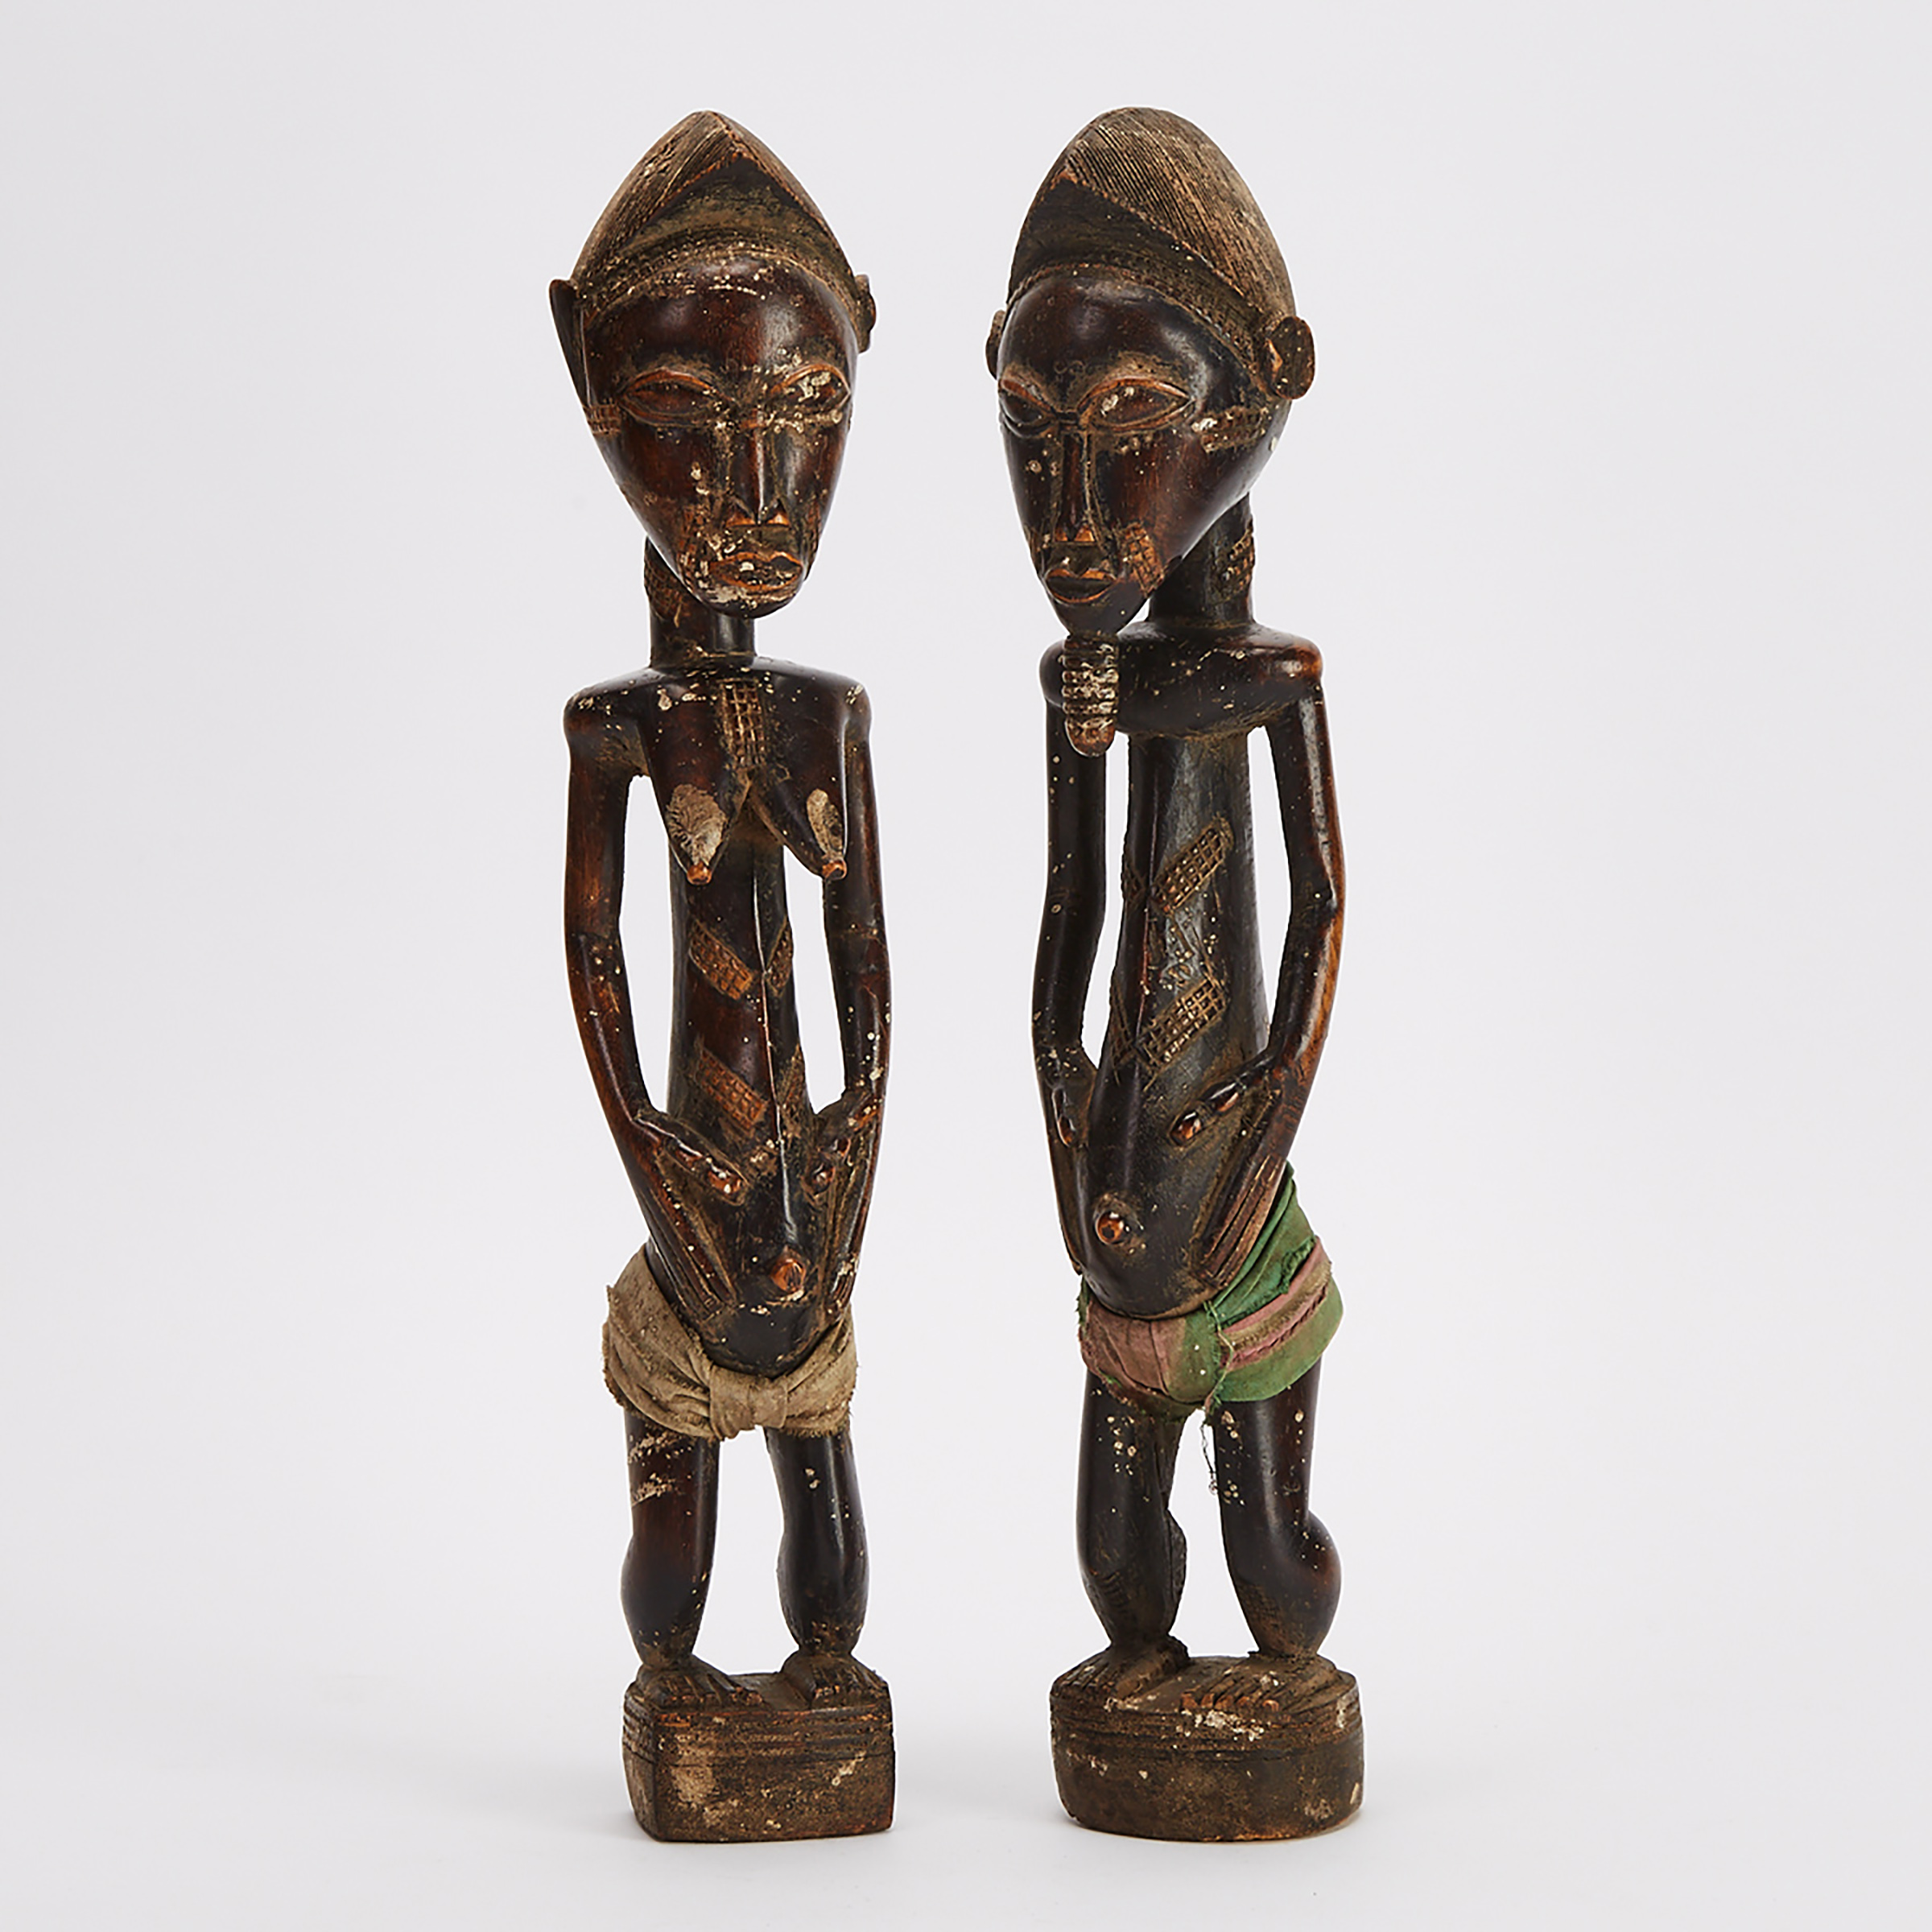 A Pair of Baule Male and Female Ancestral Figures, Ivory Coast, West Africa